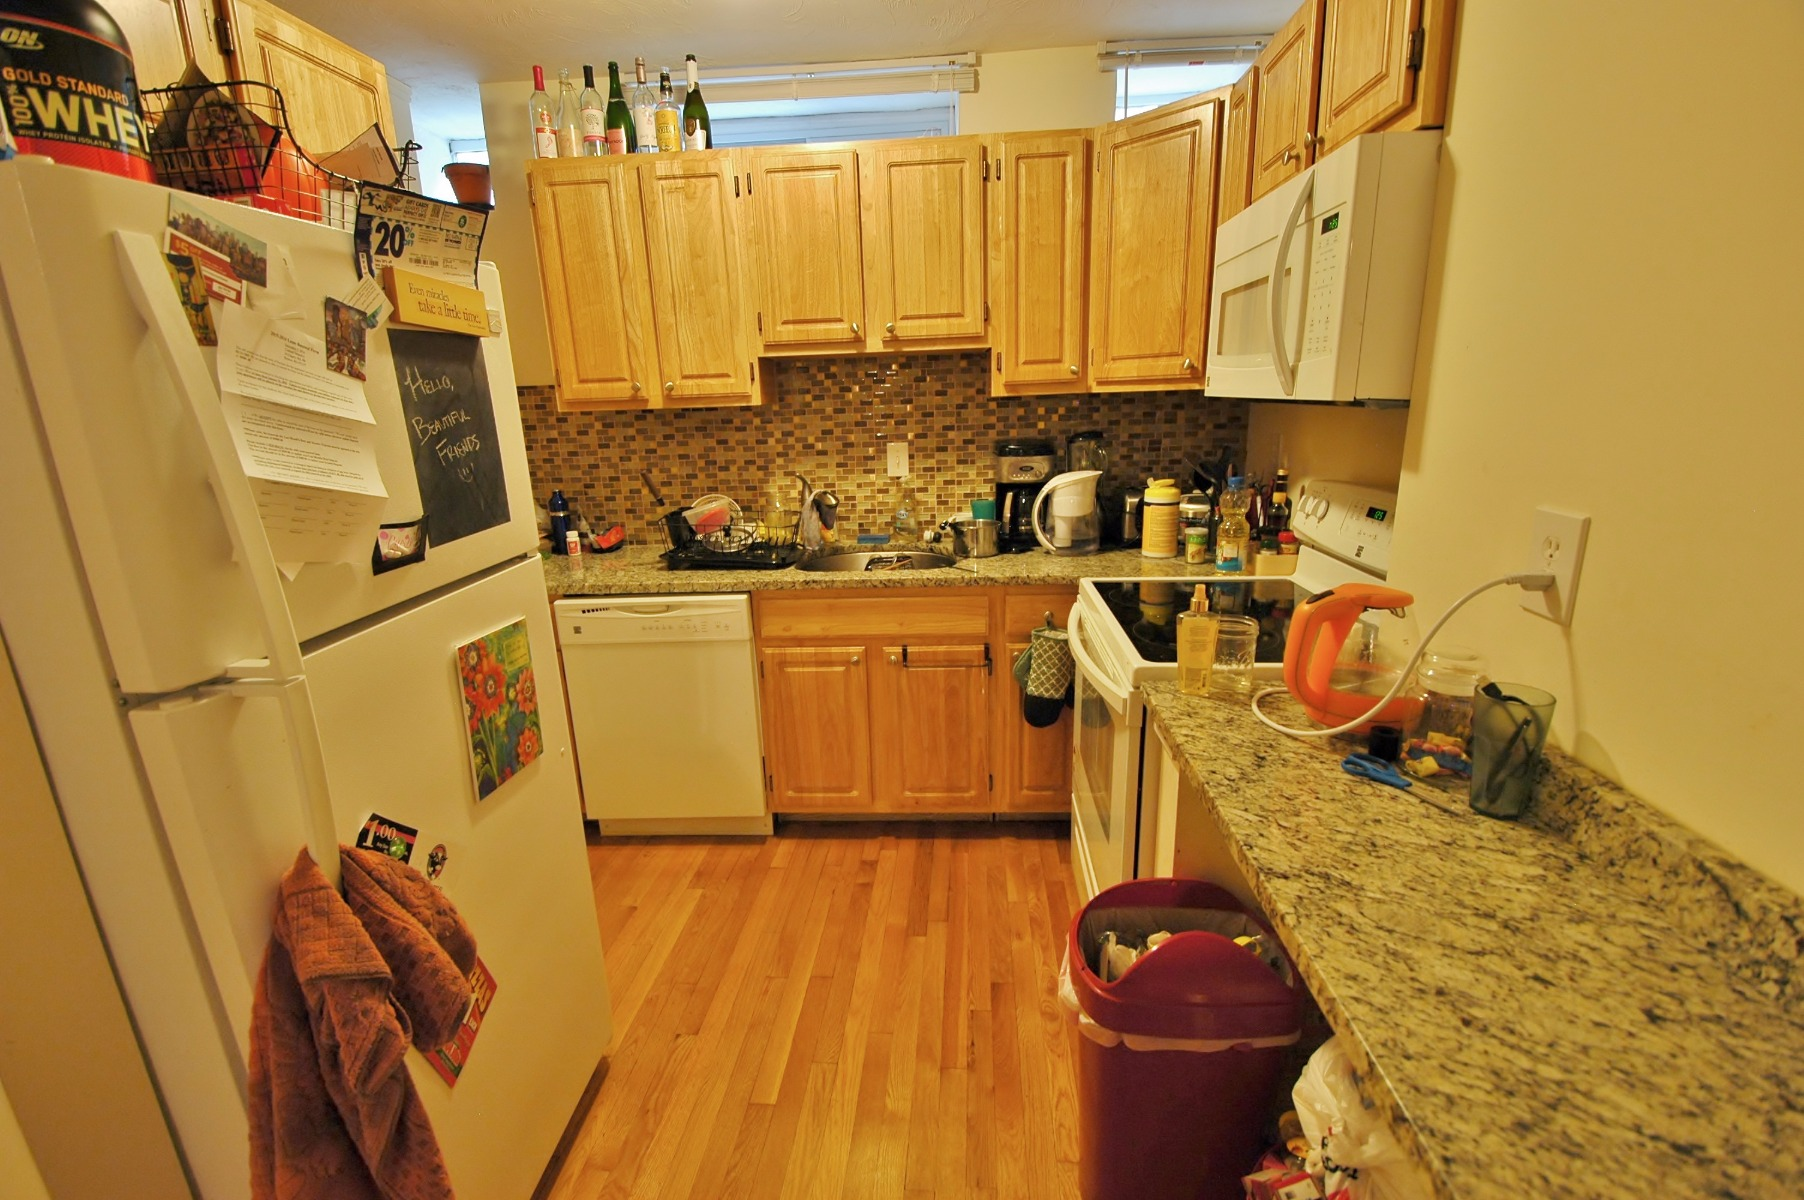 Spacious Edgerly Rd 3Bed Dish/Disp, Laundry